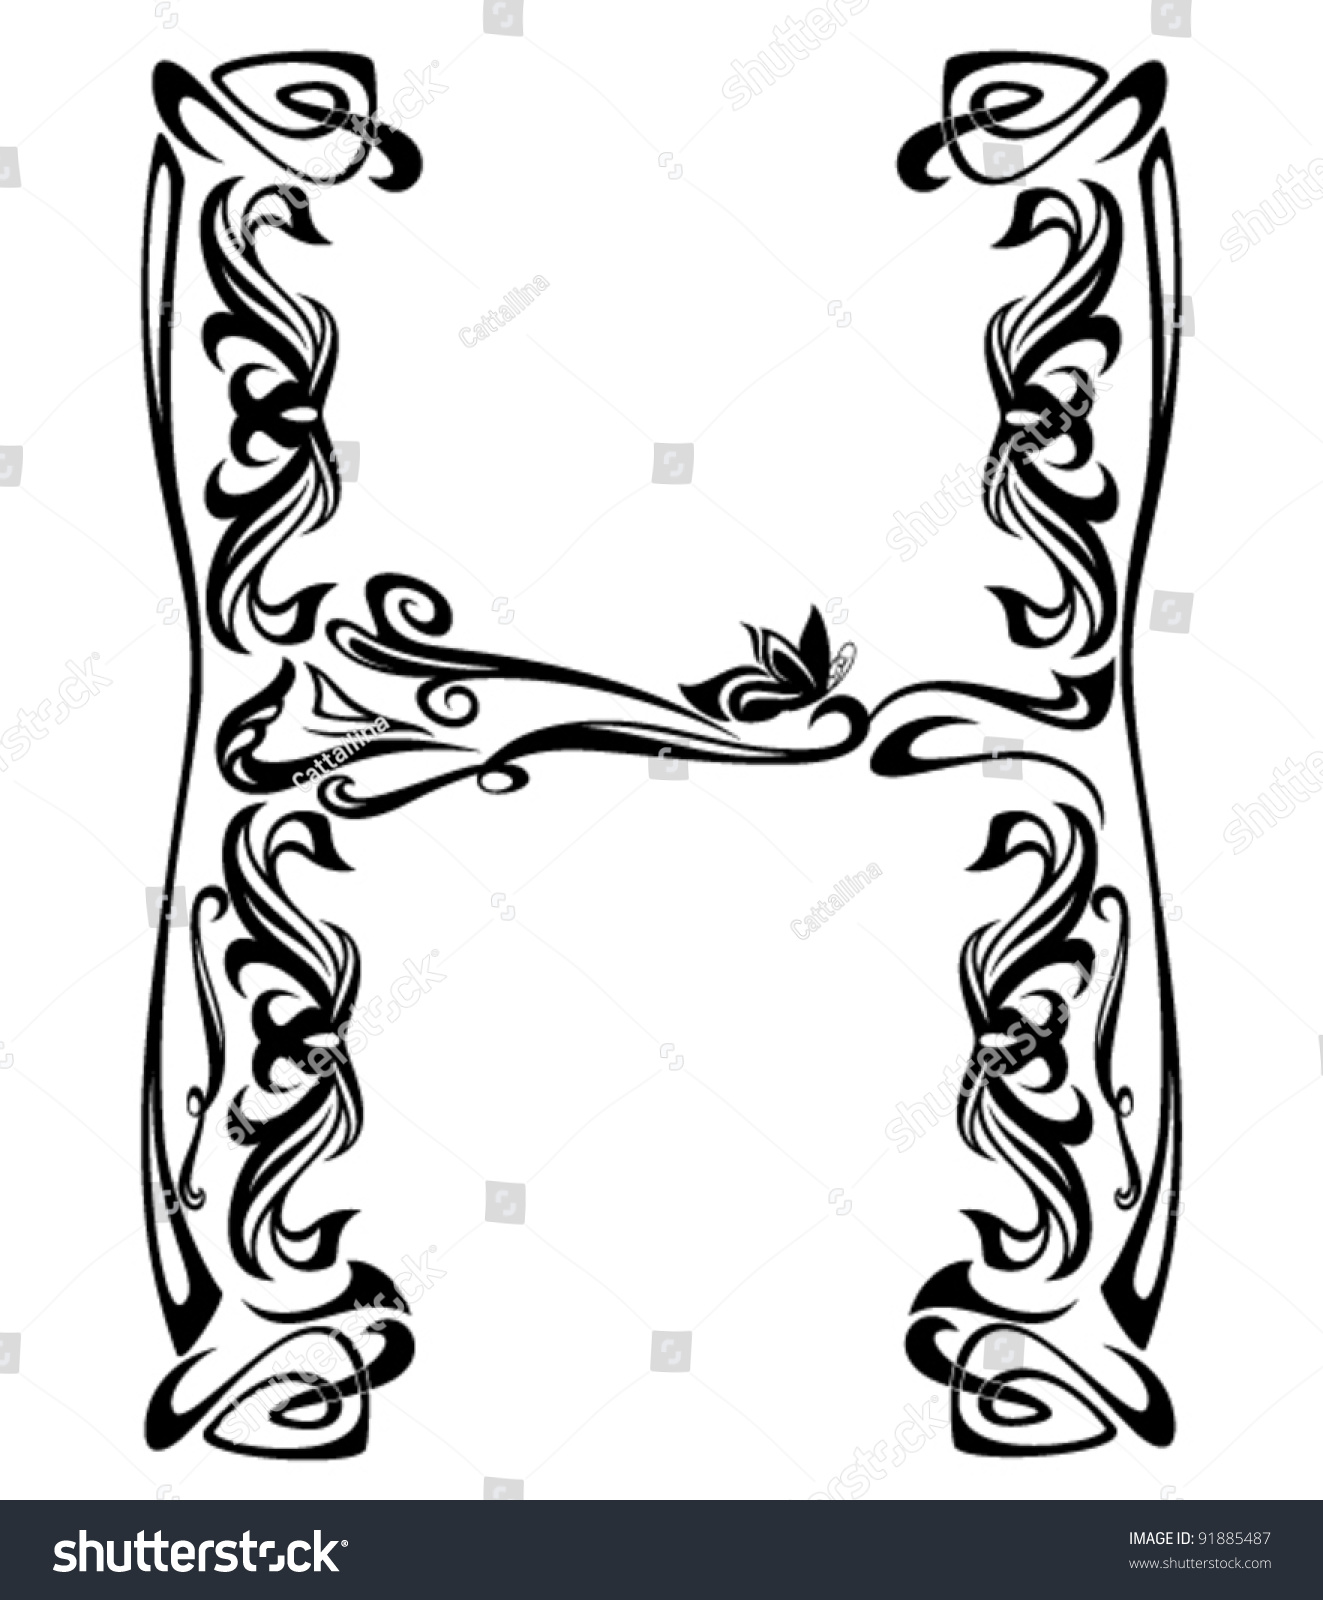 Art nouveau style vintage font letter stock vector for Decor outline